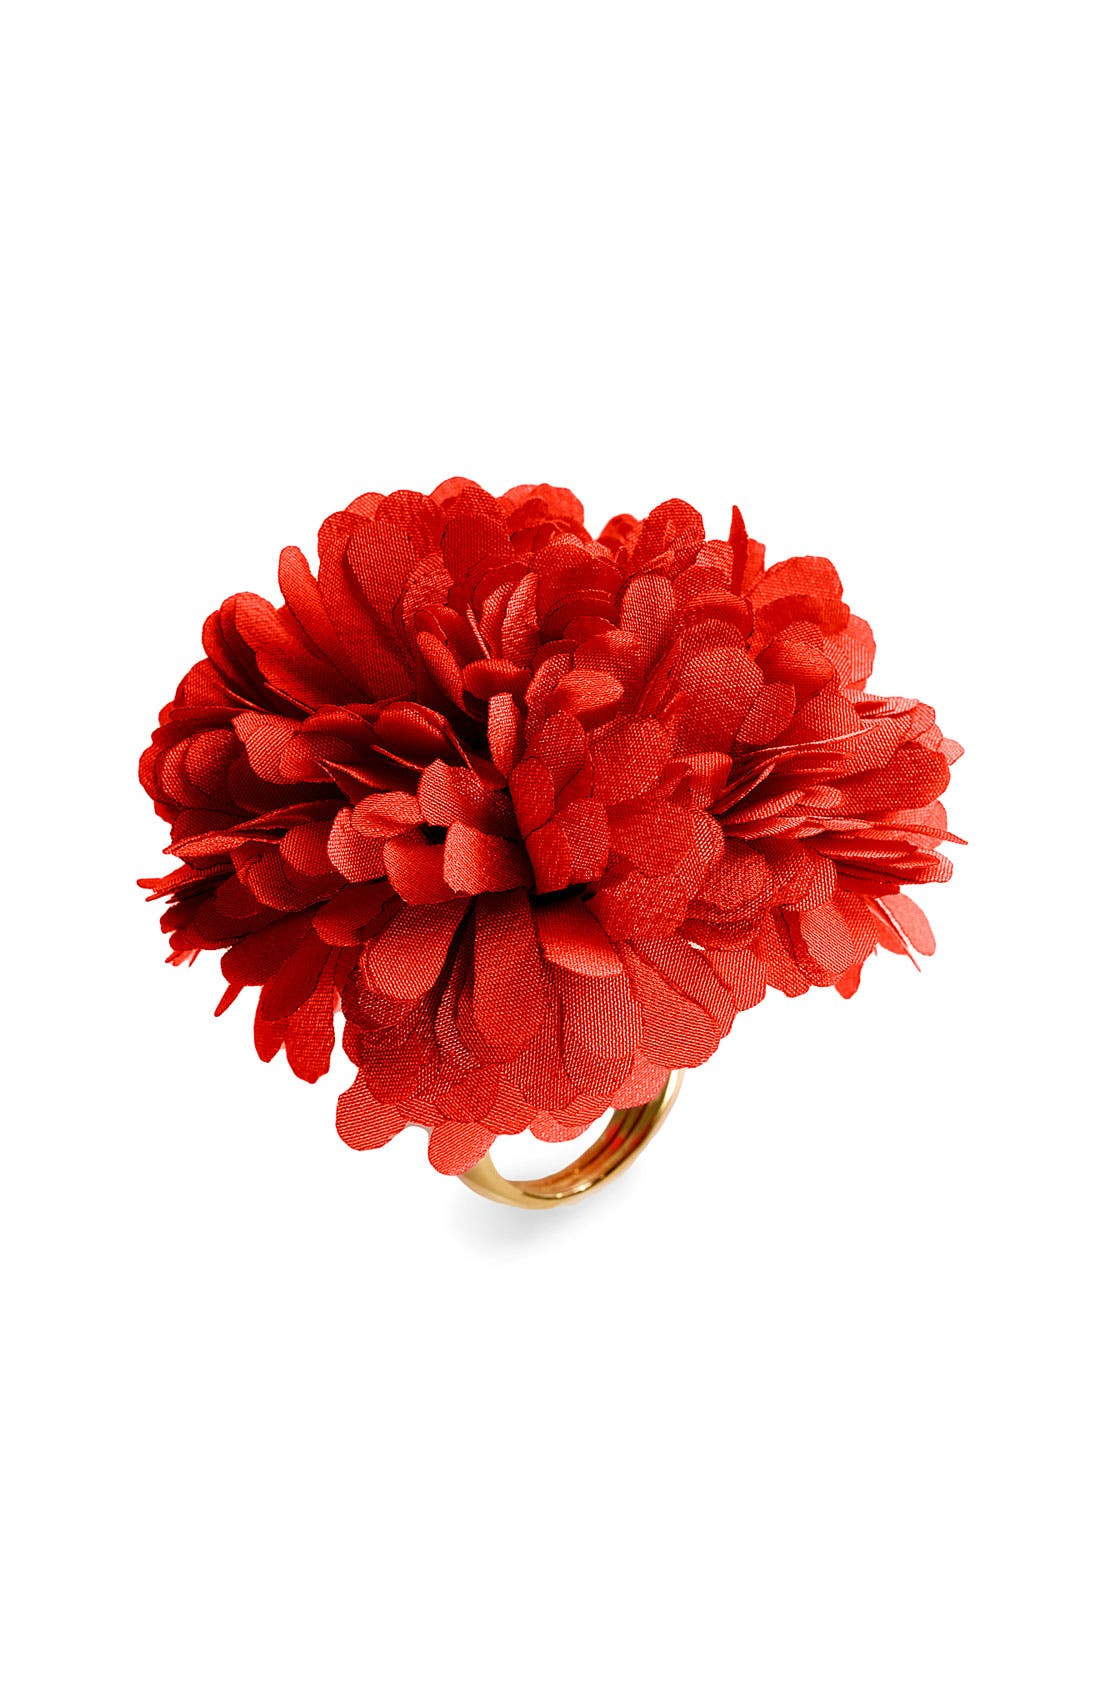 Alternate Image 1 Selected - kate spade new york 'date night' floral ring